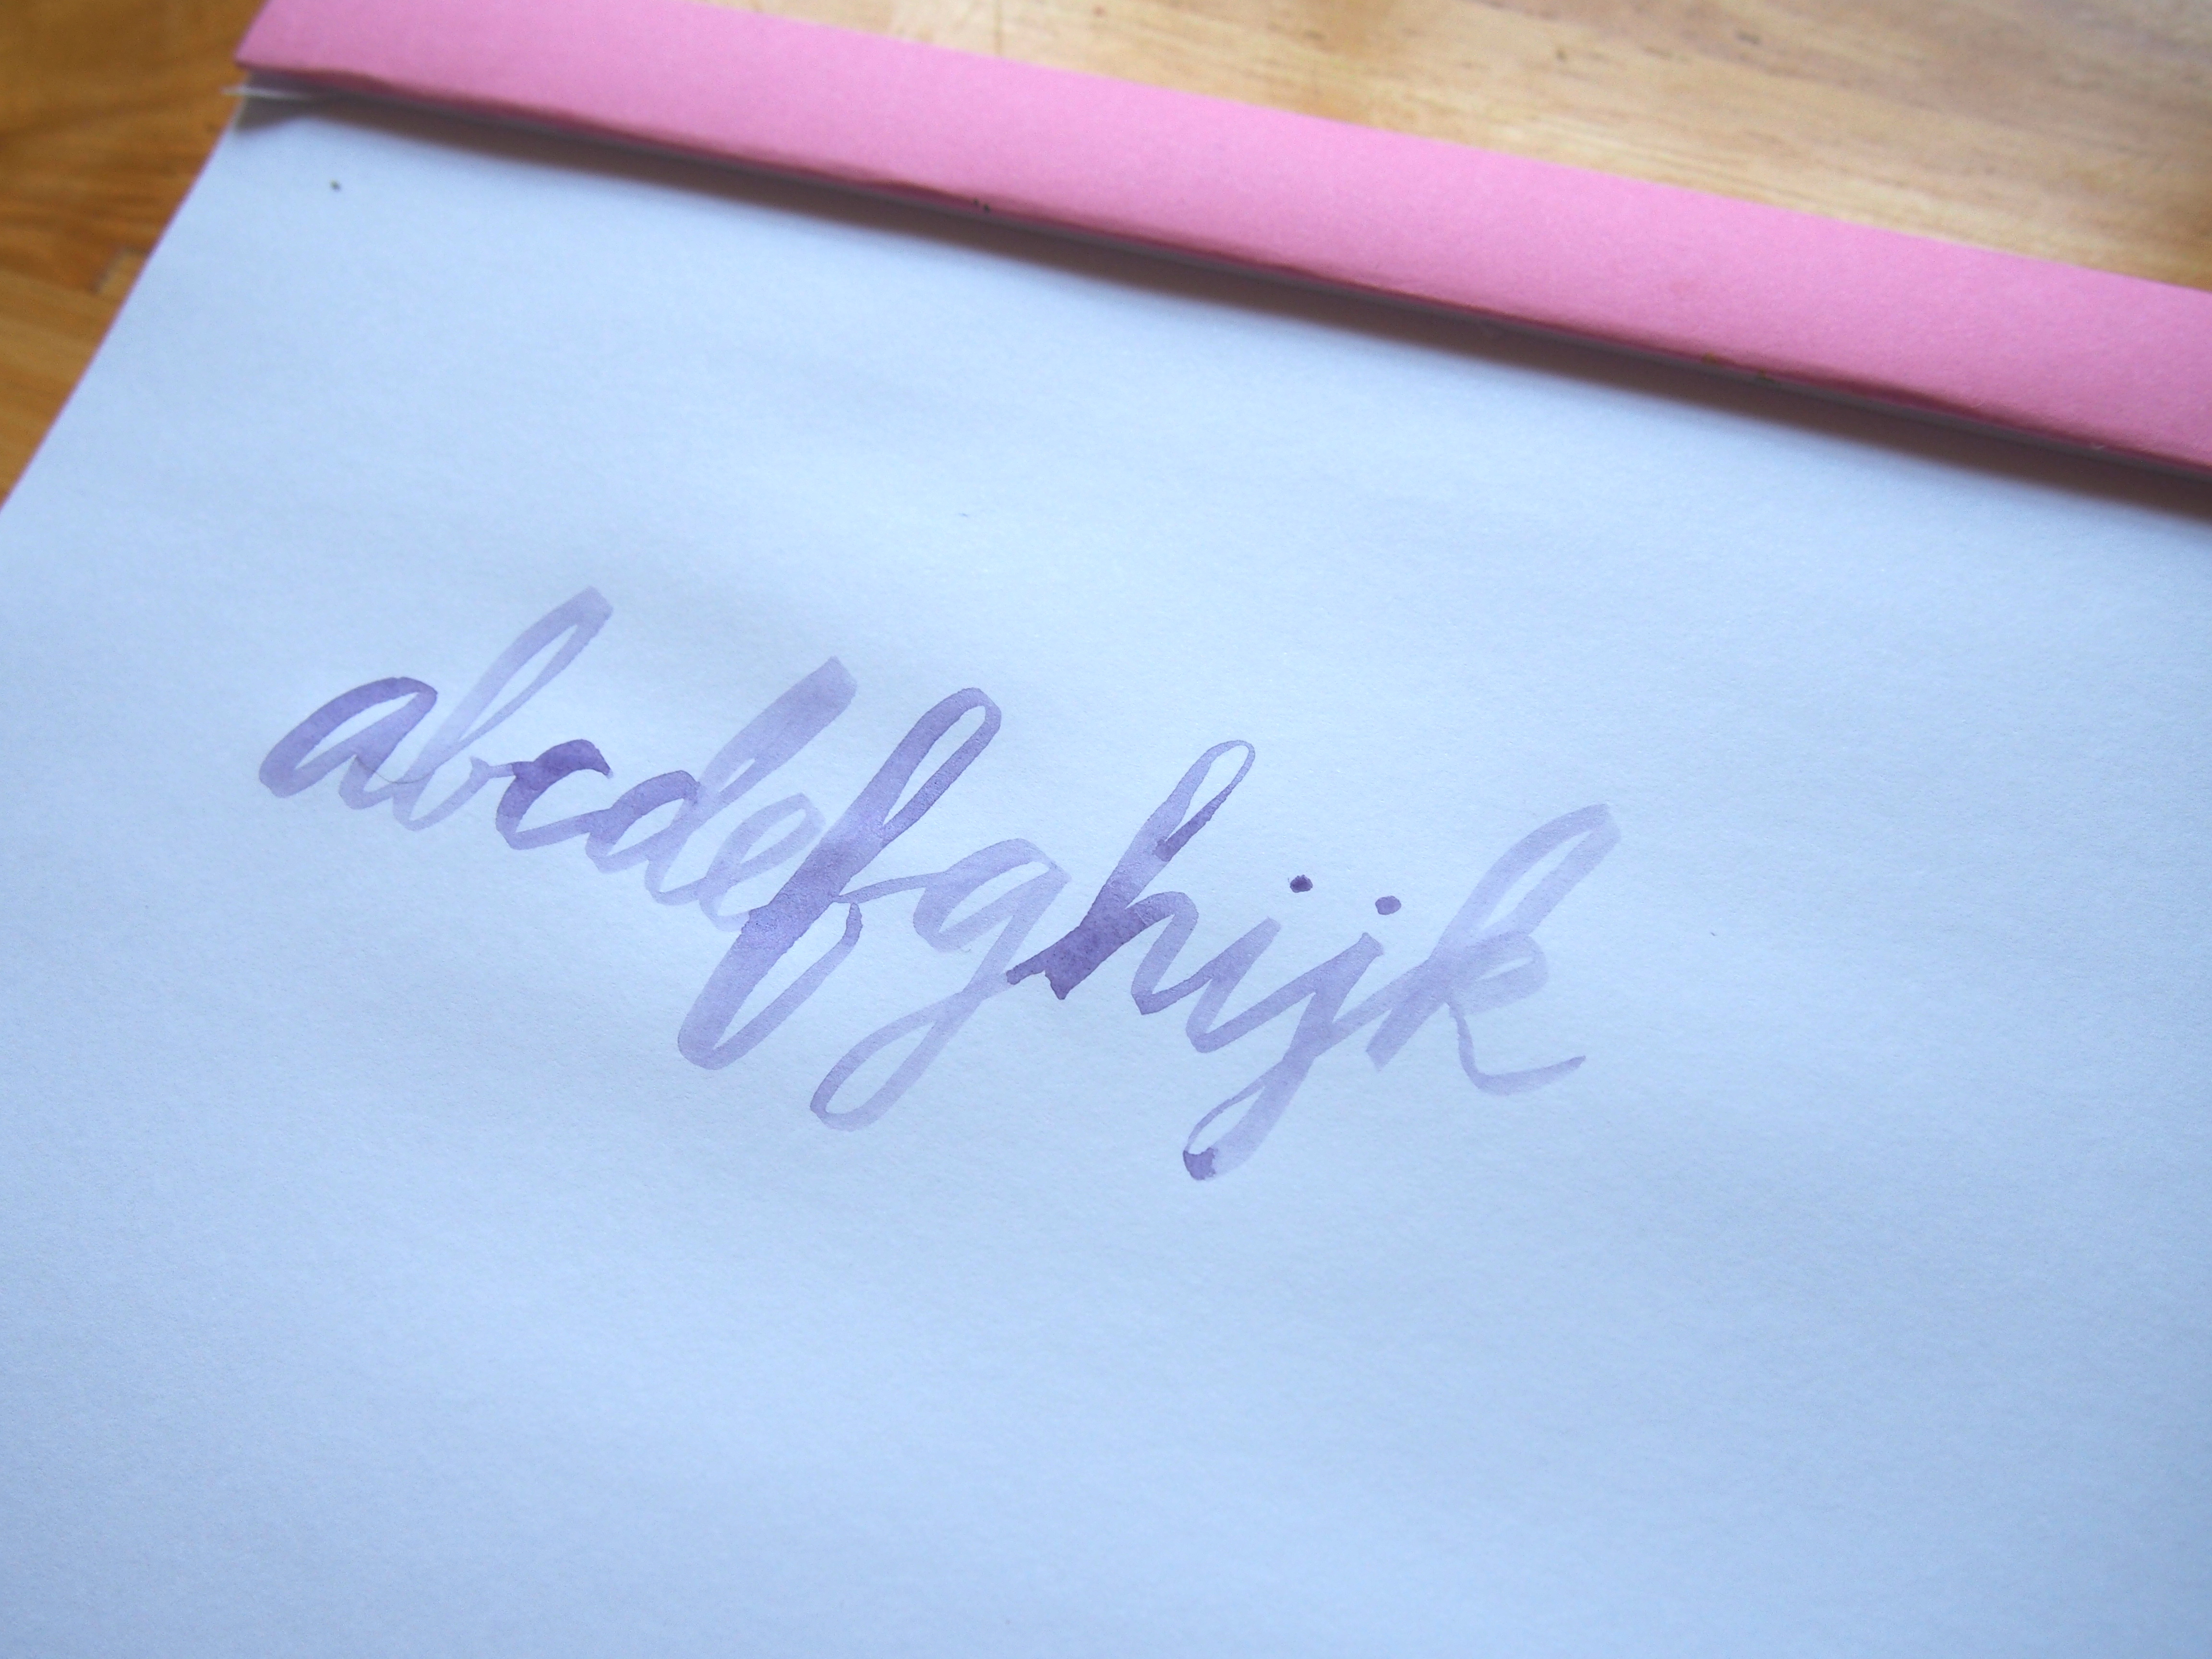 Brush Lettering Clairefontaine Graf it Sketchpad Wonderpens.ca Wonder Pens Blog Toronto Canada